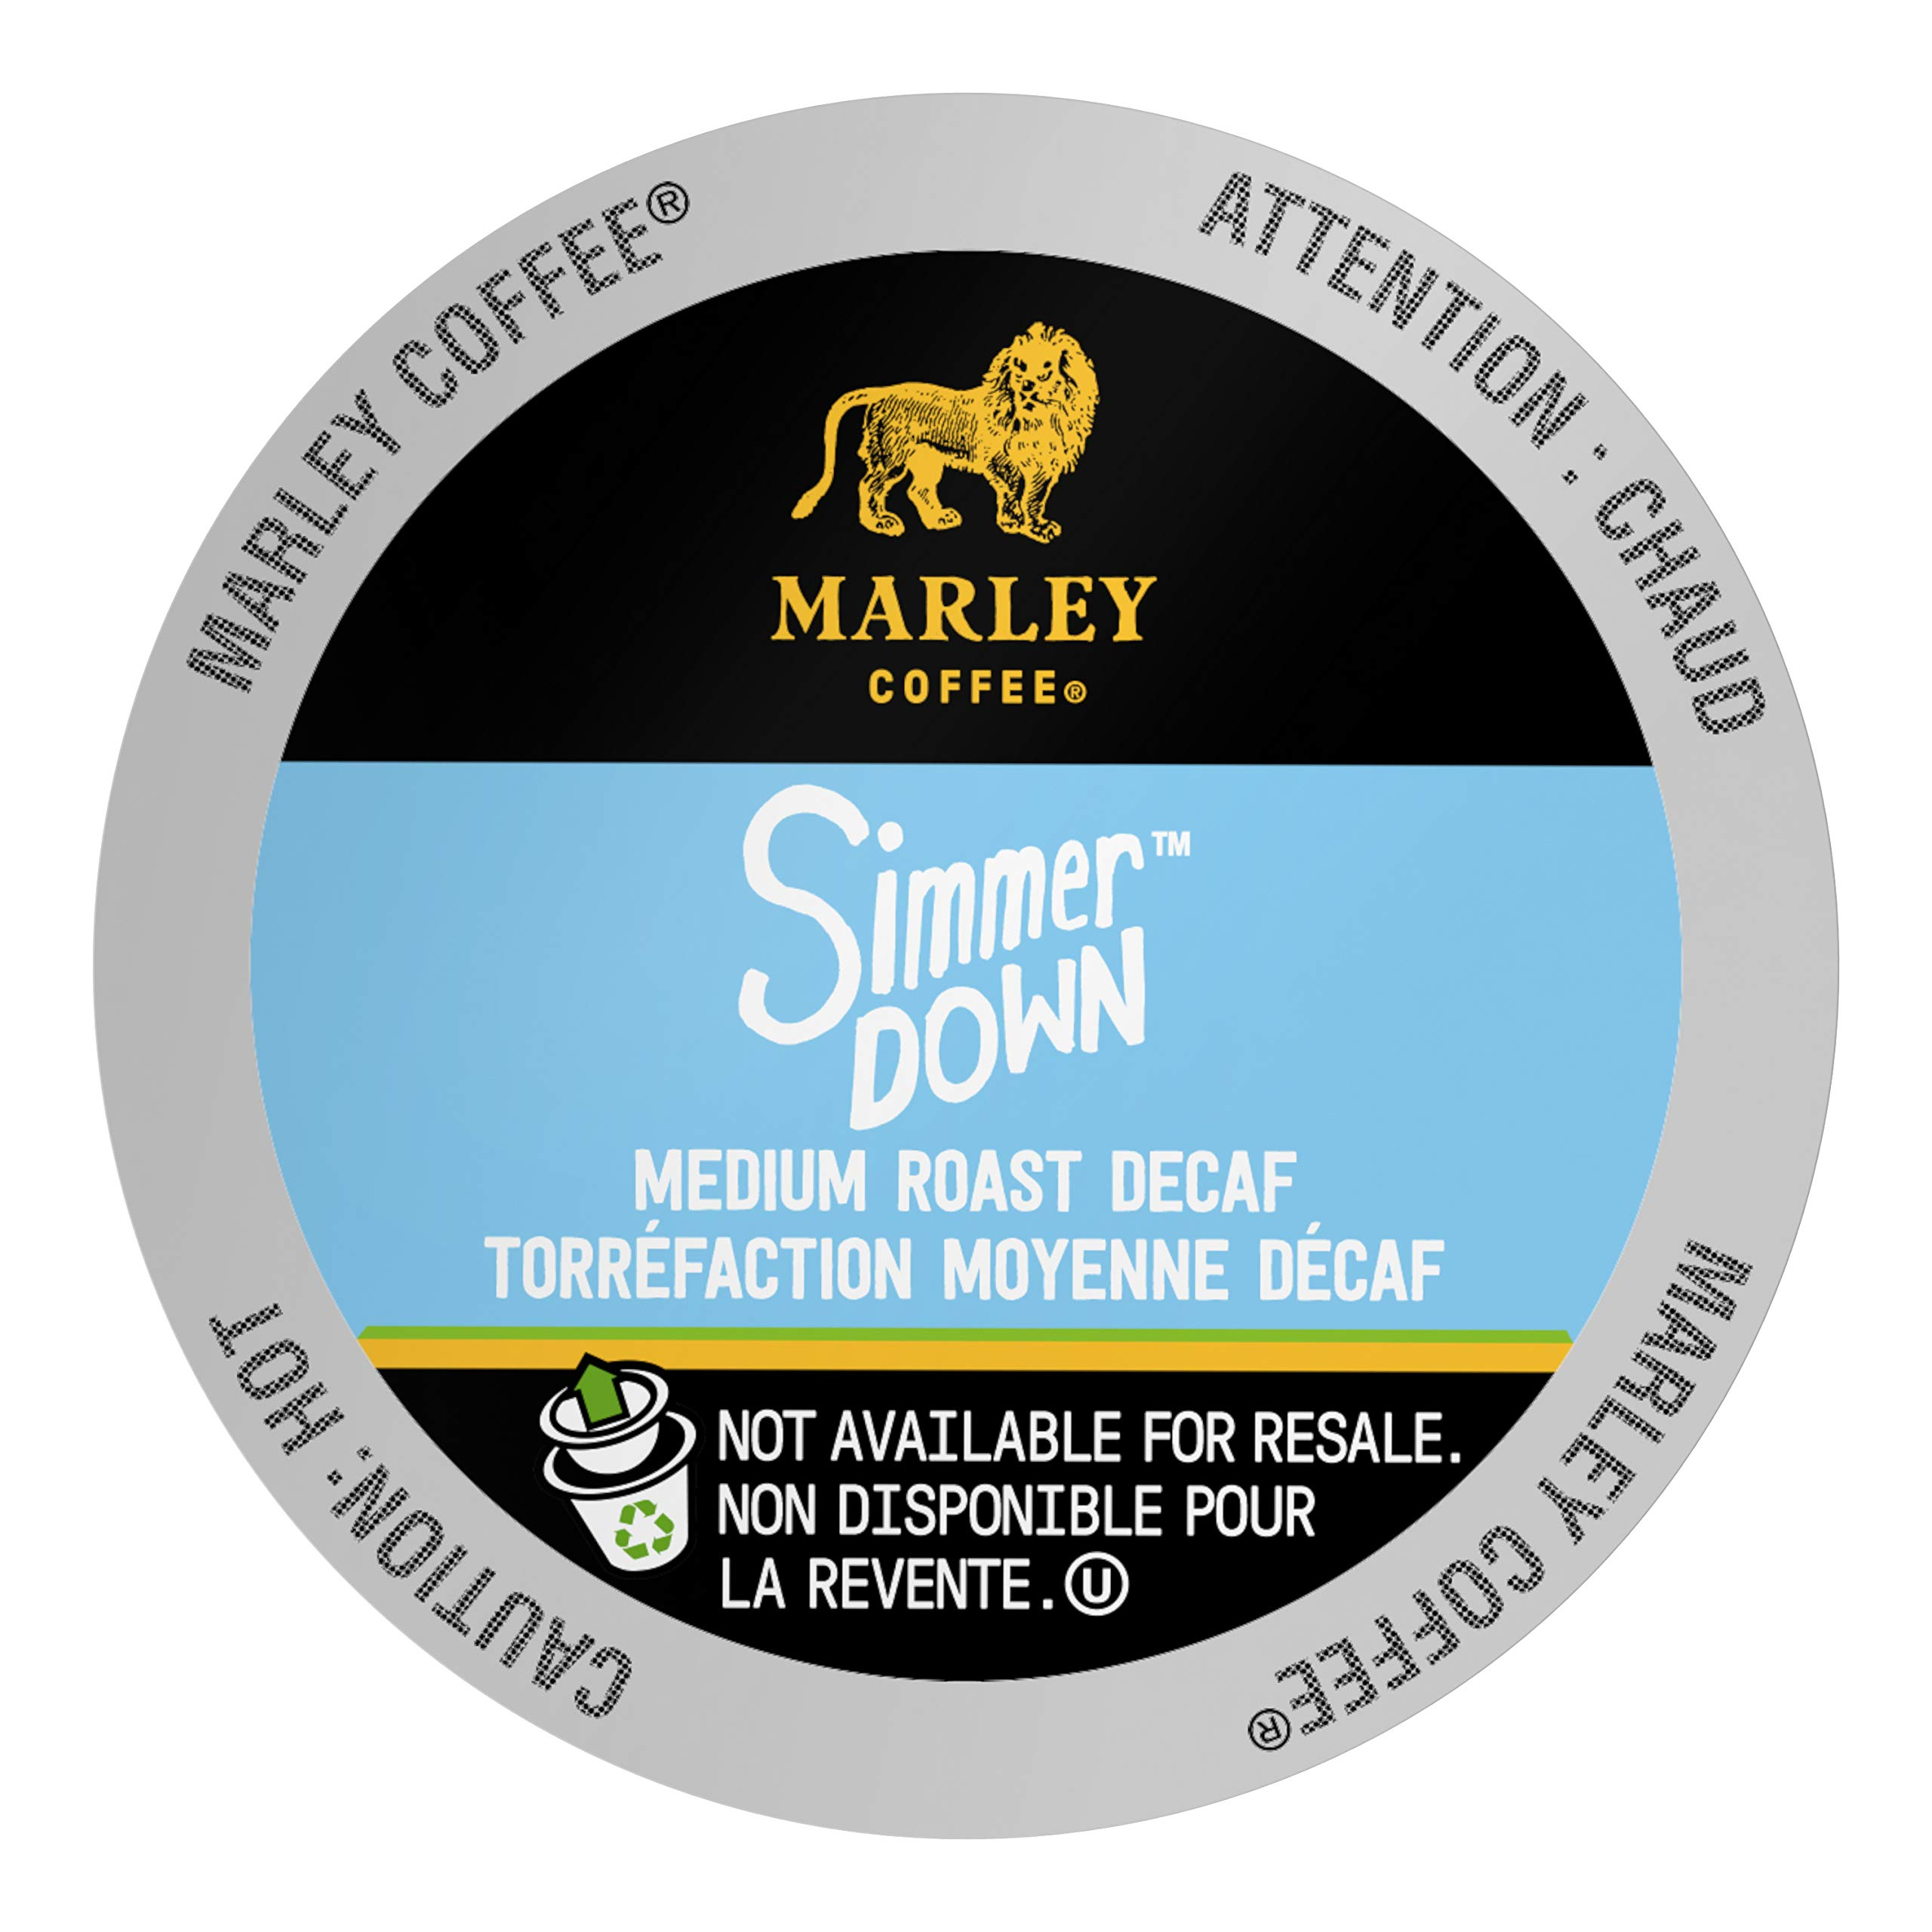 Marley Coffee Single Serve Capsules, Simmer Down Decaf, Swiss Water Process, Medium Roast, Compatible with Keurig K-Cup Brewers, 12 Count (Pack of 6)